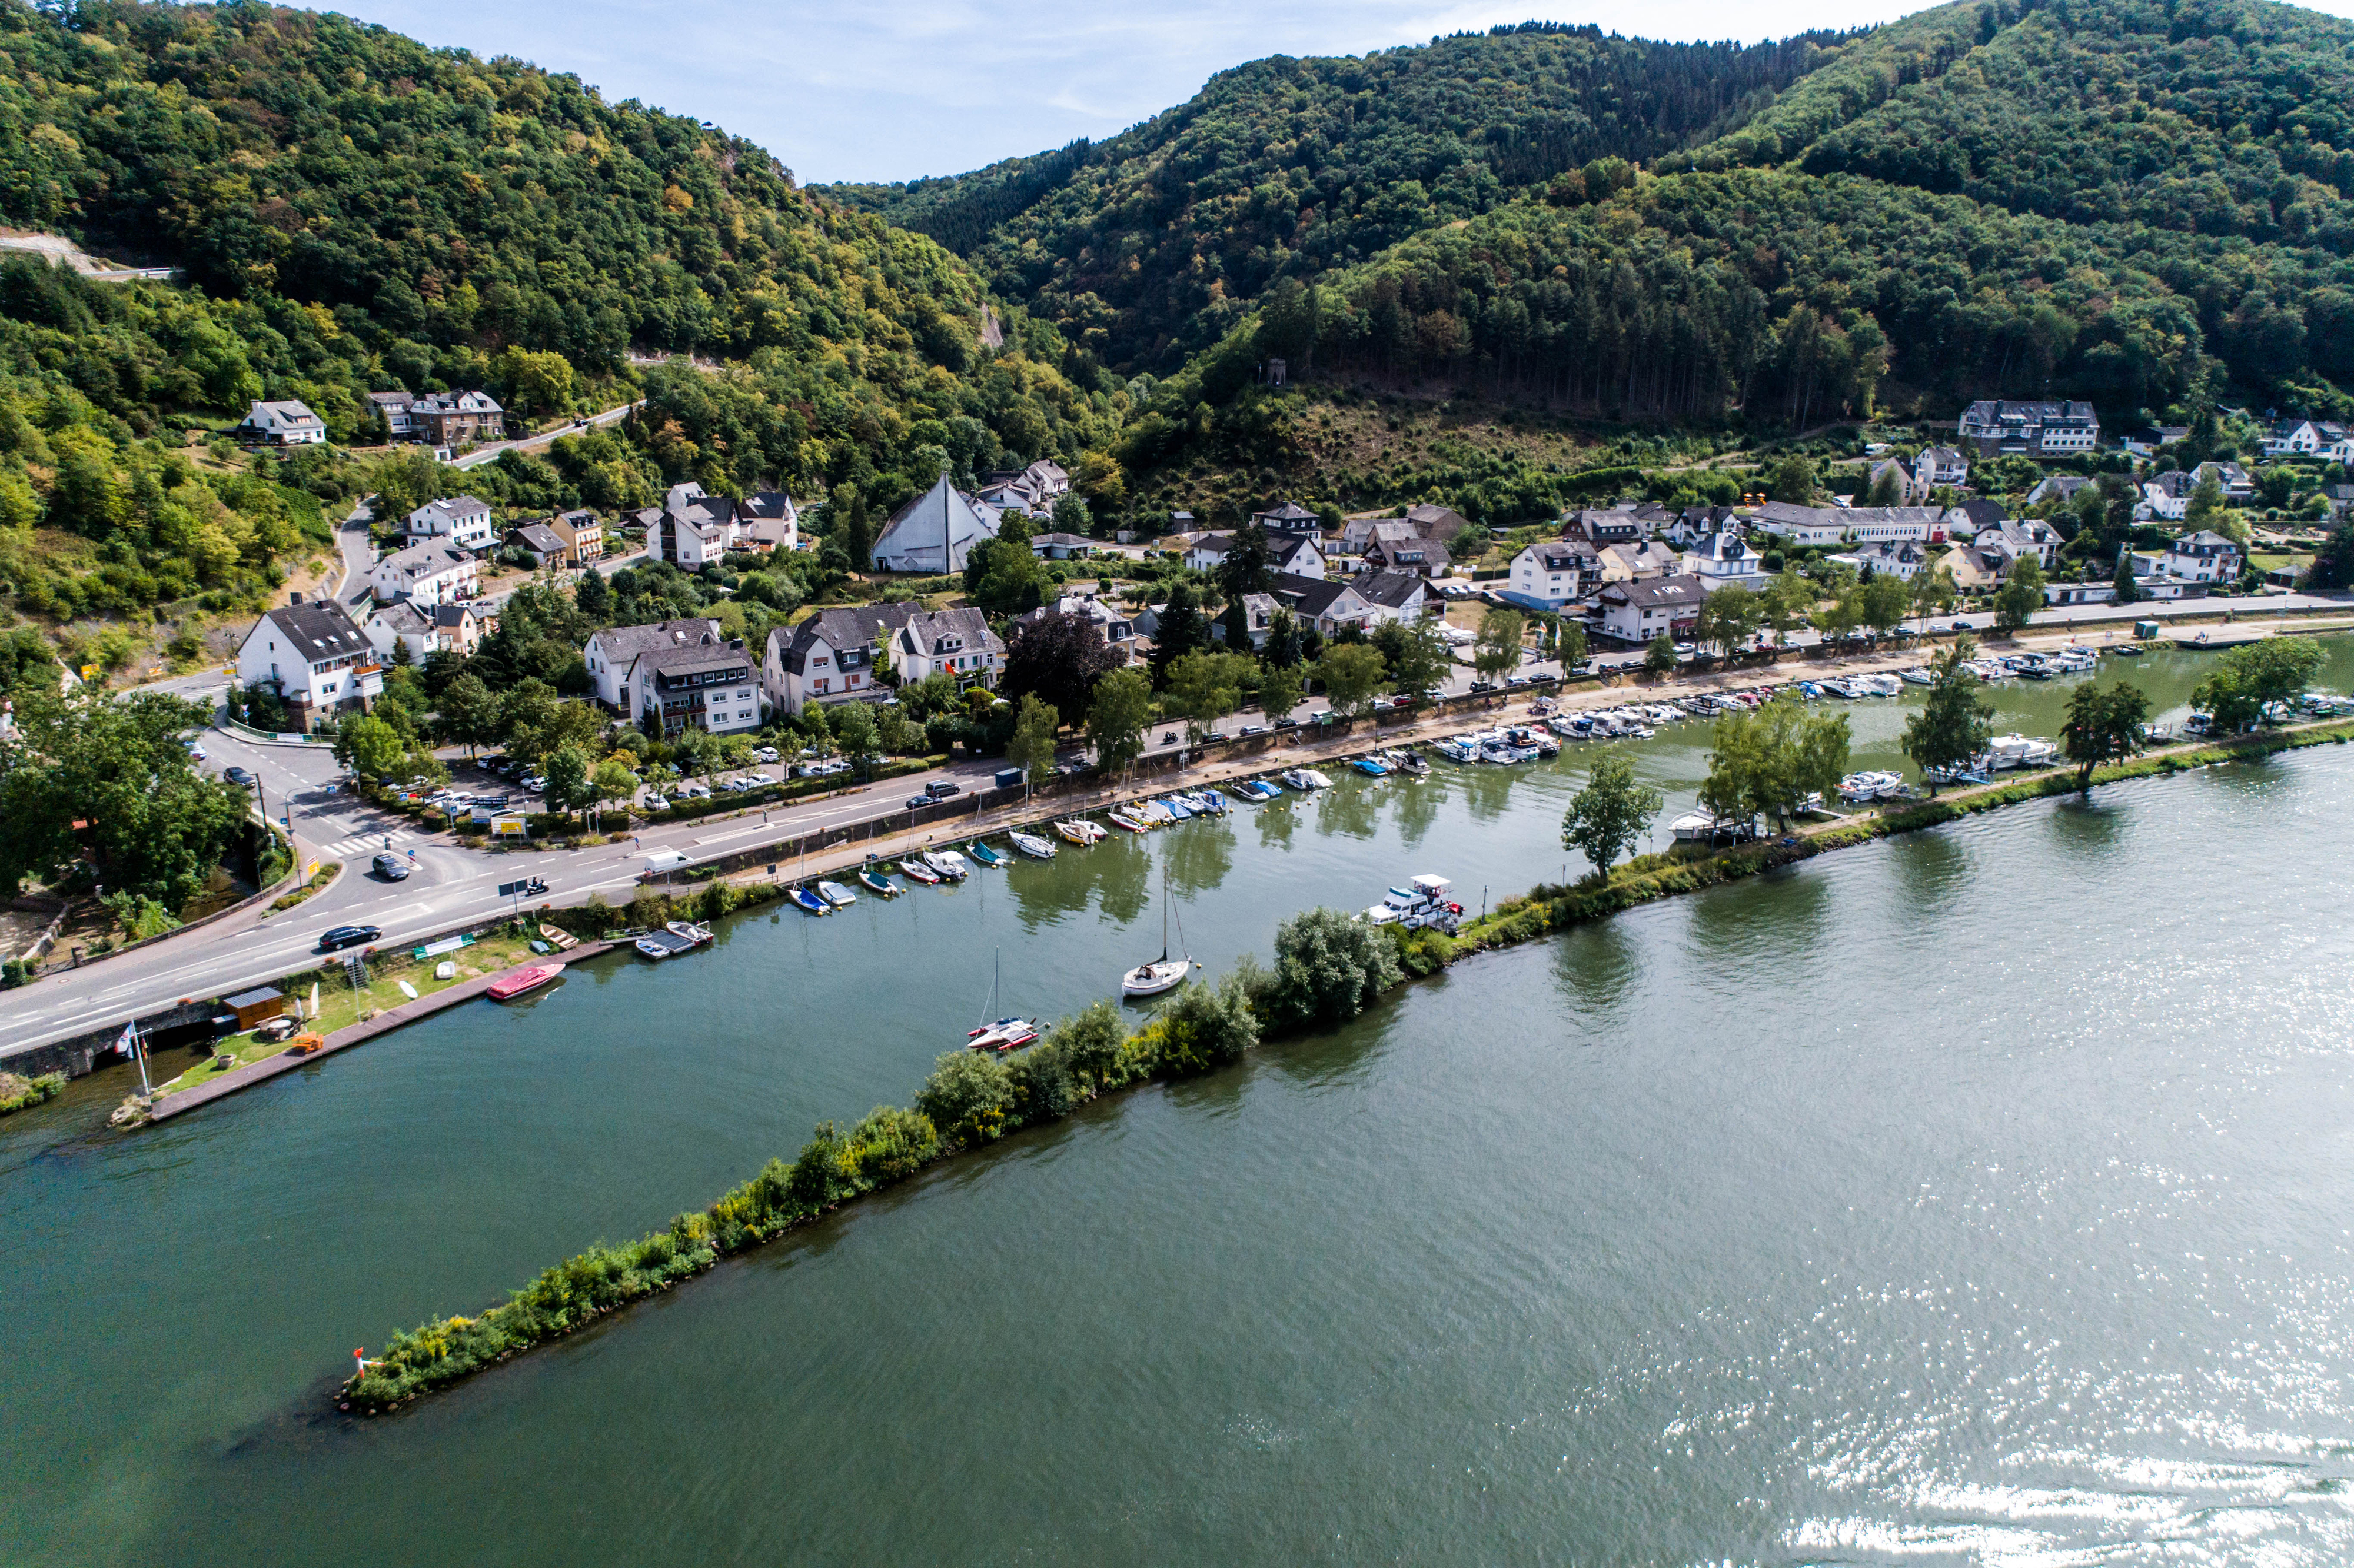 Aerial view of the mosel village Brodenbach in Germany on a sunny summer day.